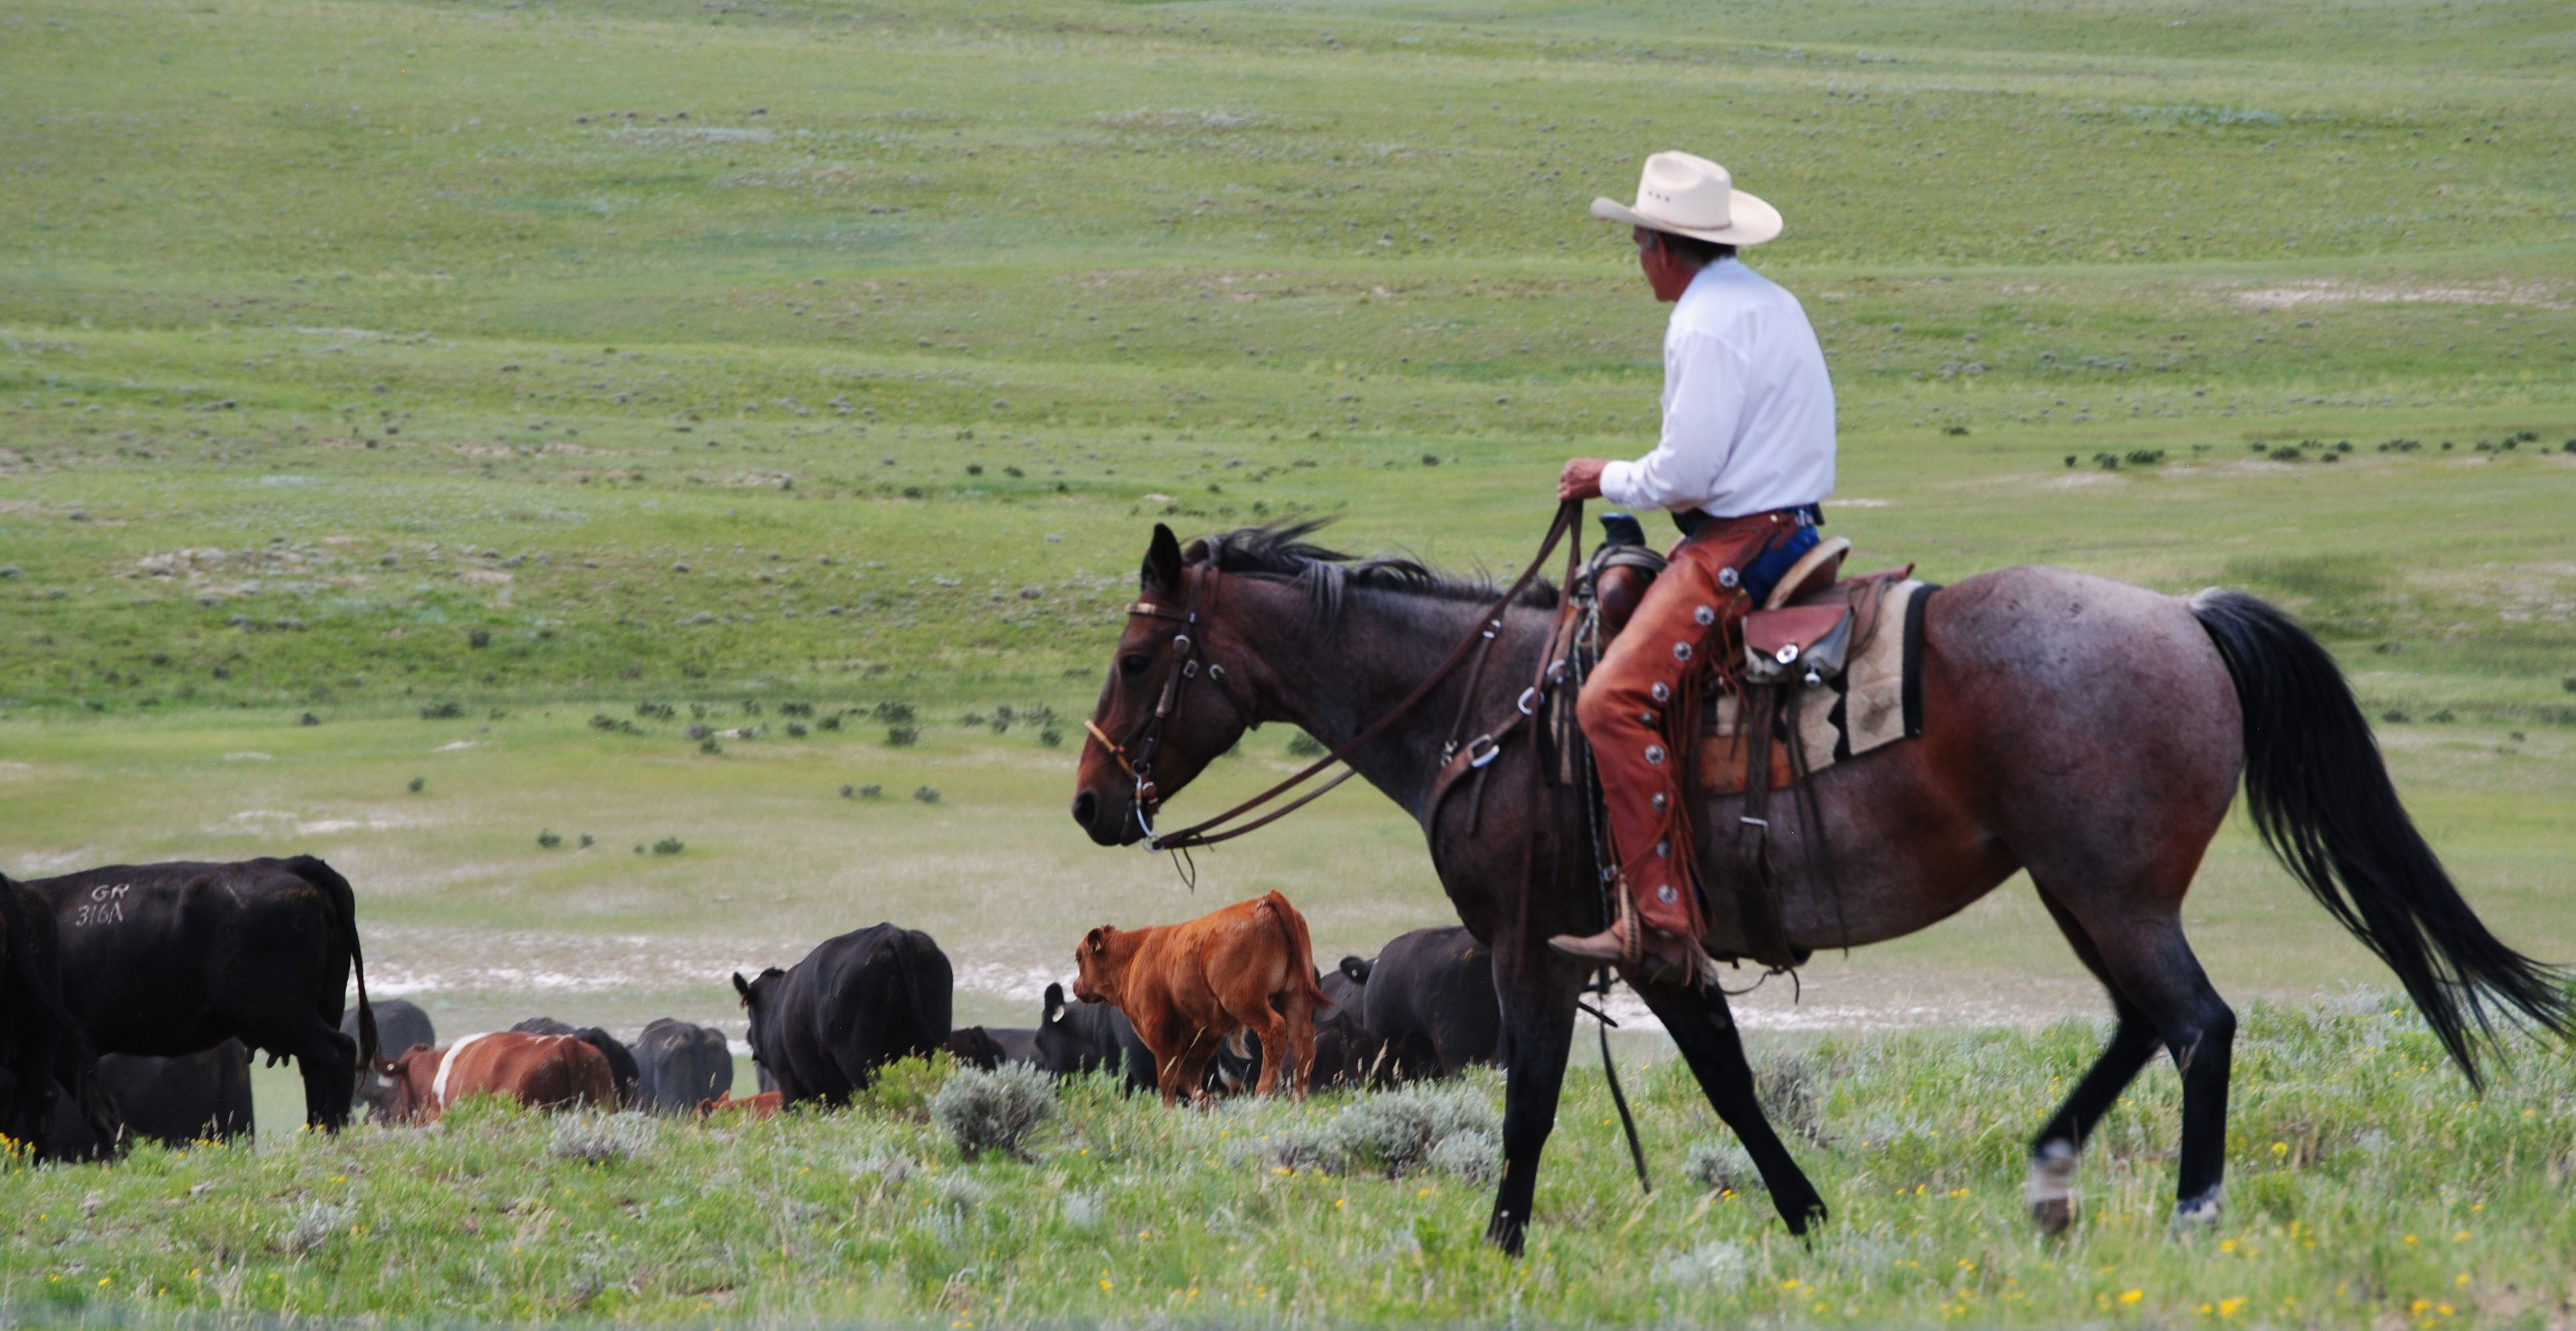 Guy and cattle, Gould Ranch Cattle Company